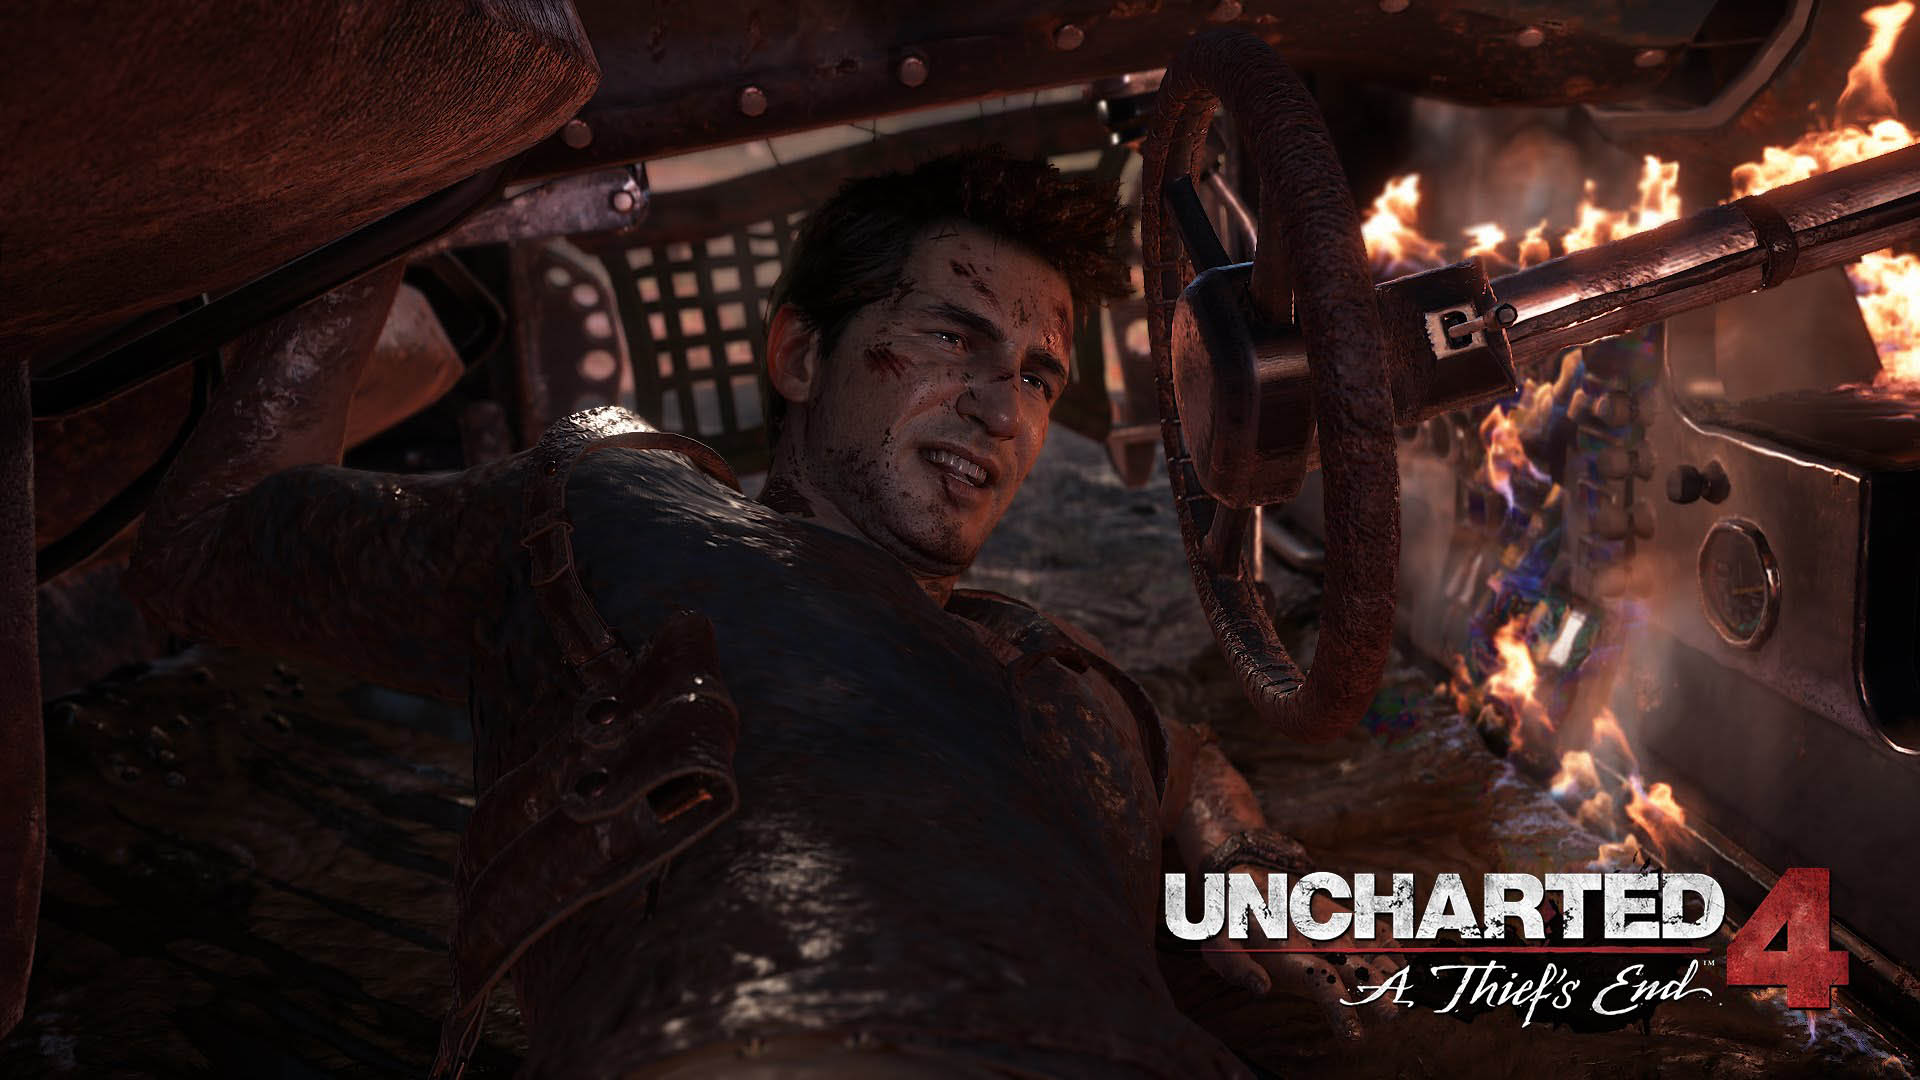 uncharted 4 wallpapers, images, backgrounds, photos and pictures